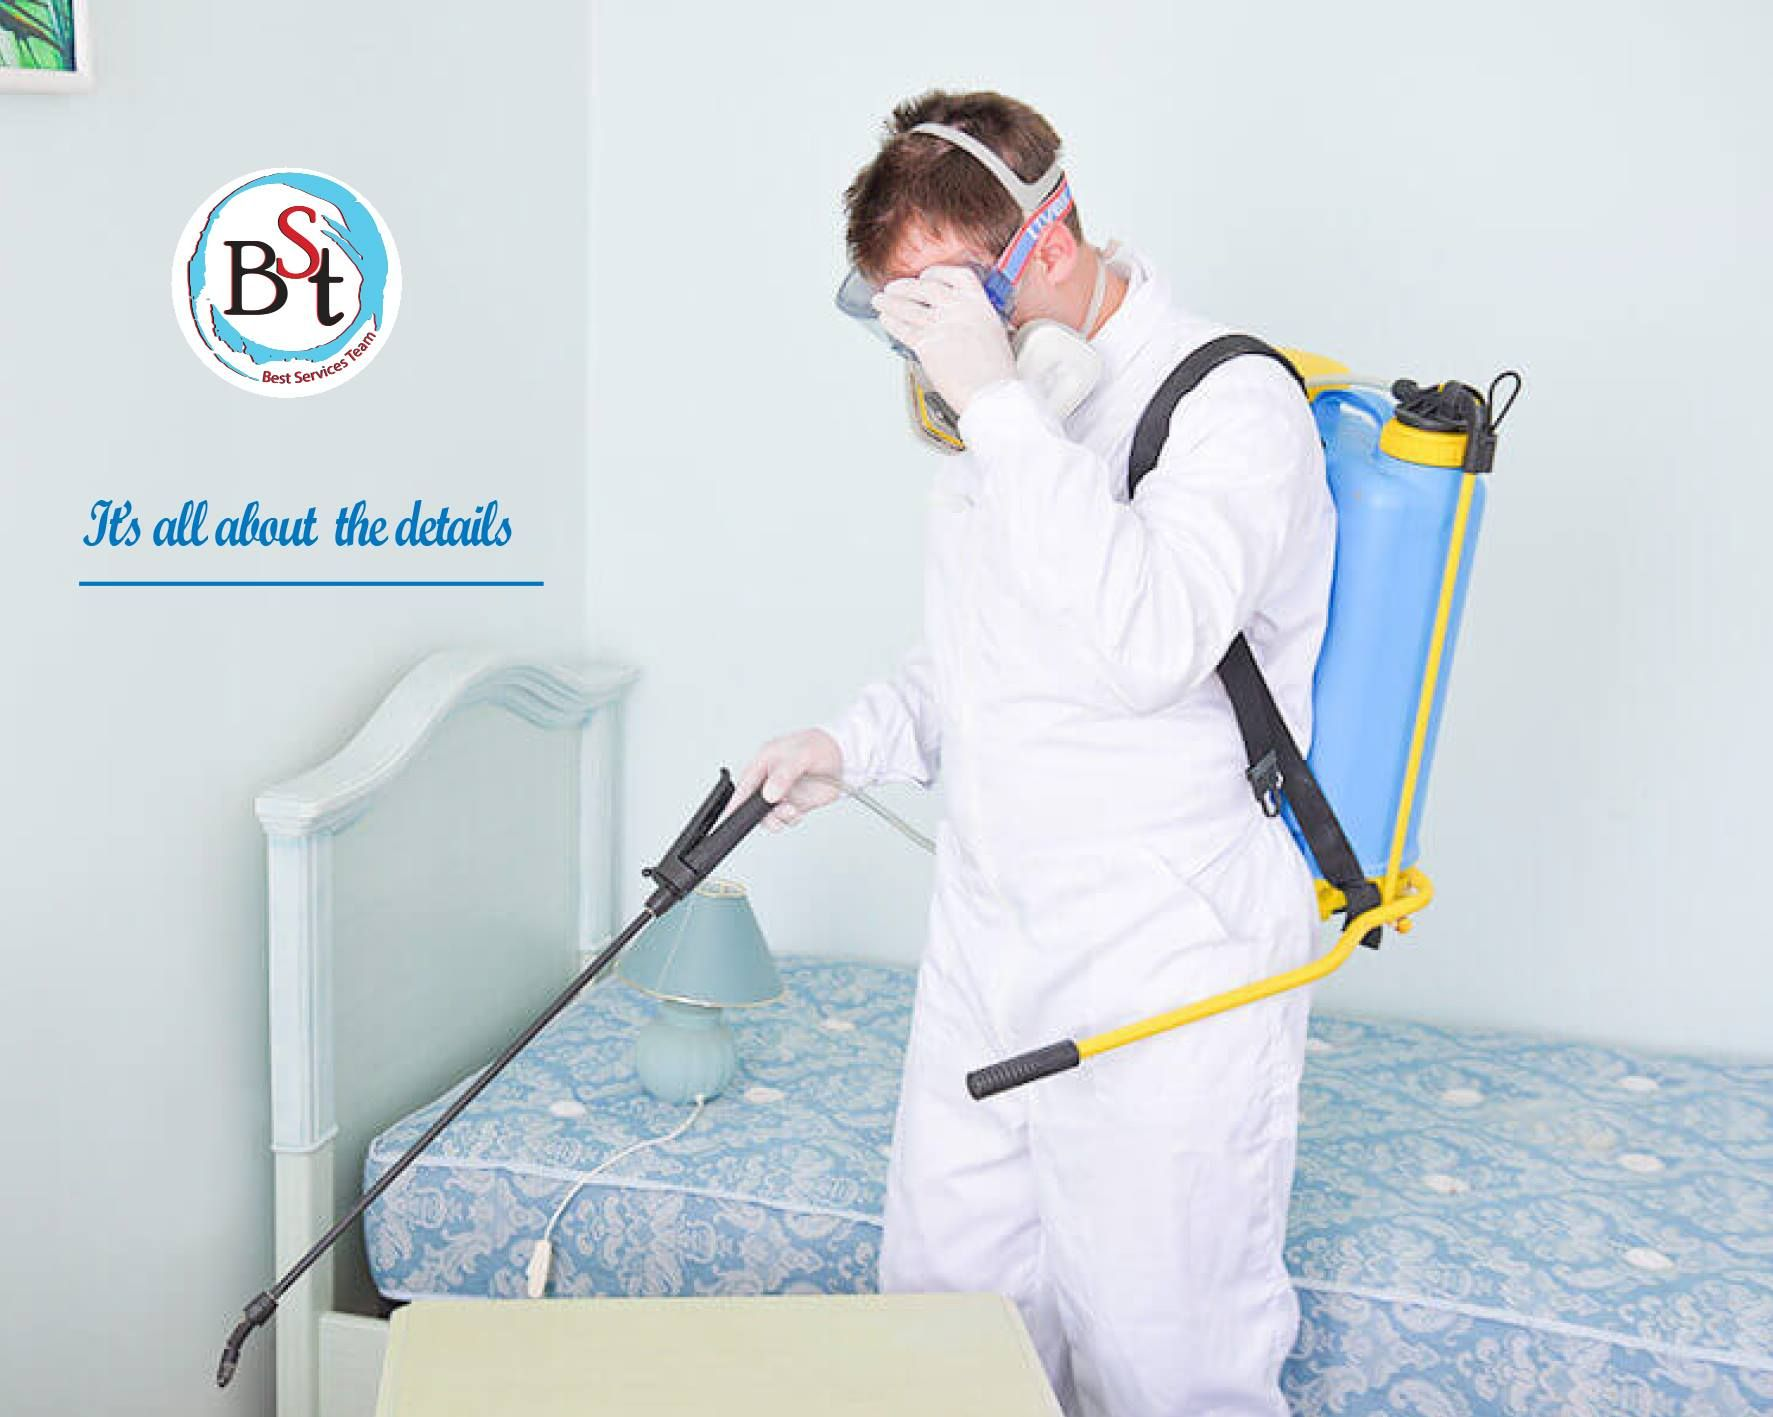 Best Services Team, BST-cleaning-services-lebanon-1